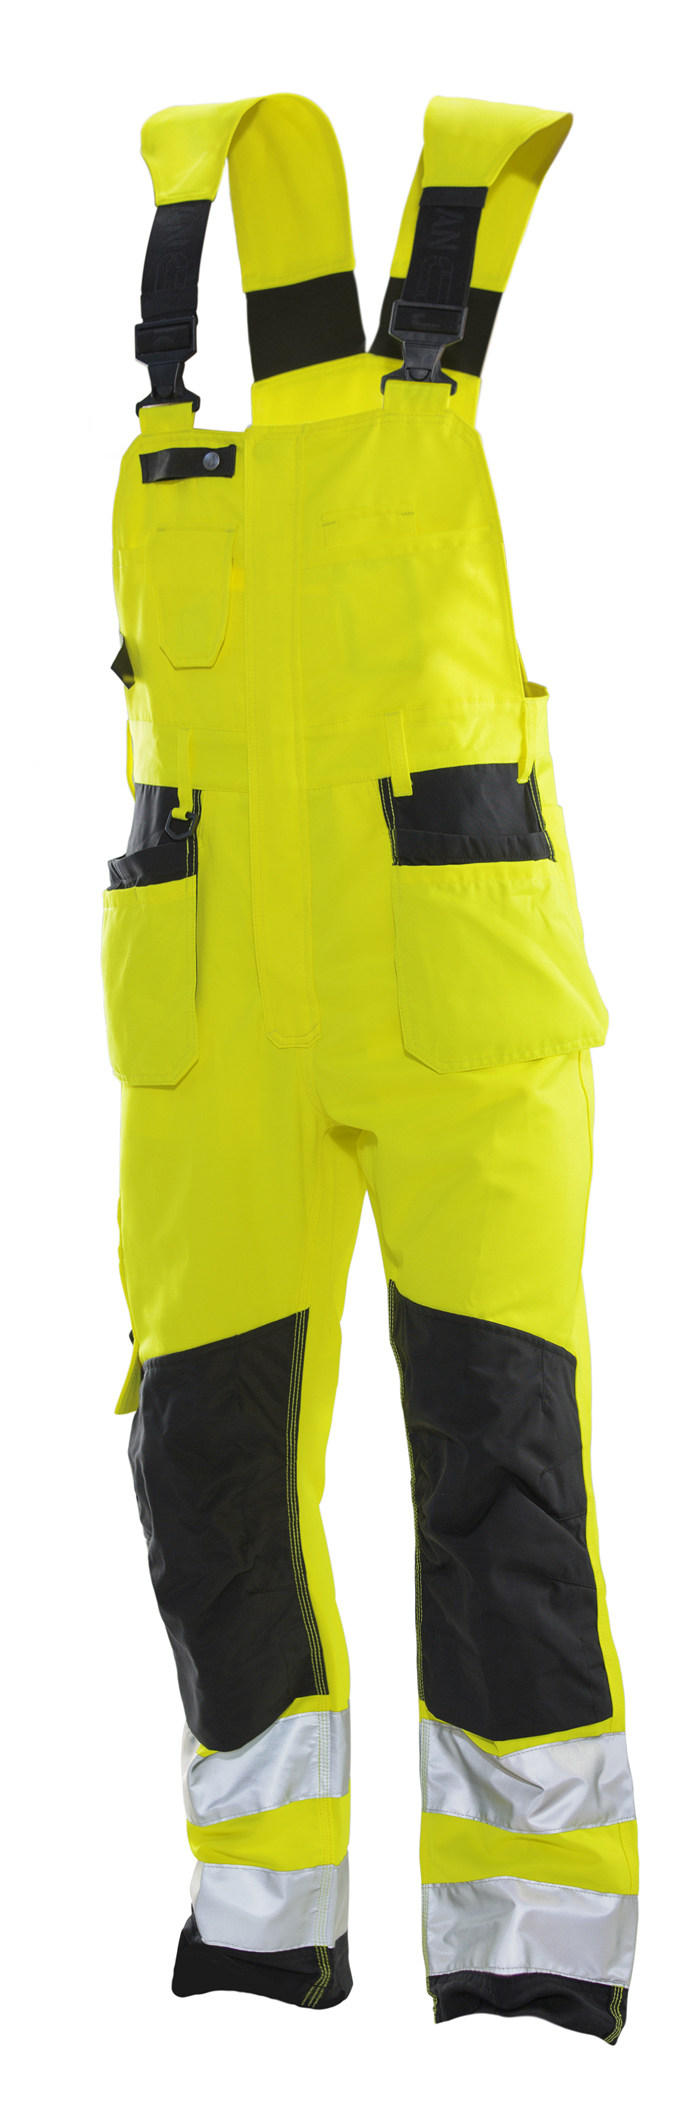 overall high visibility